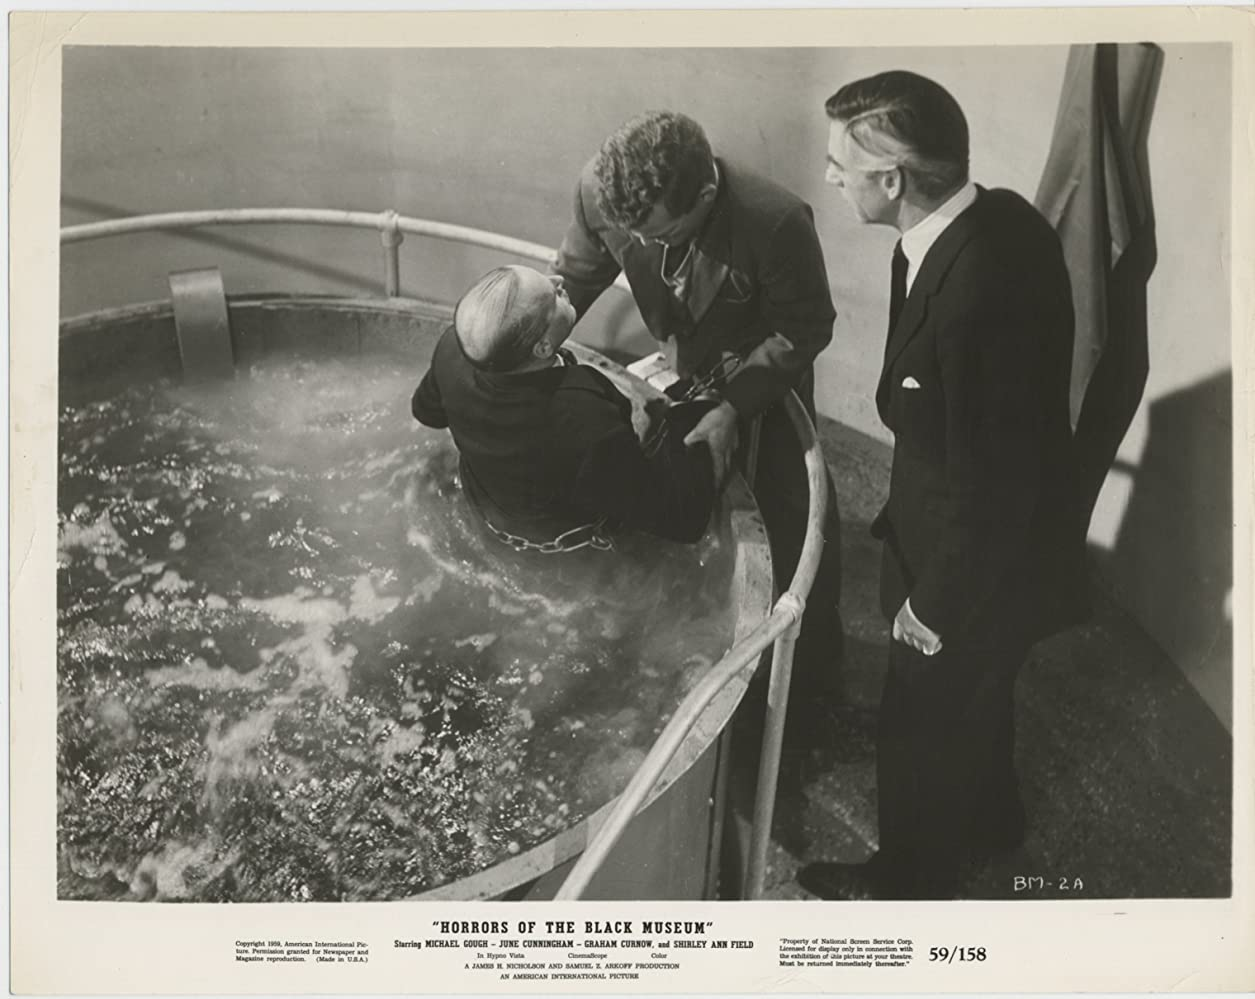 Michael Gough, Gerald Andersen, and Graham Curnow in Horrors of the Black Museum (1959)